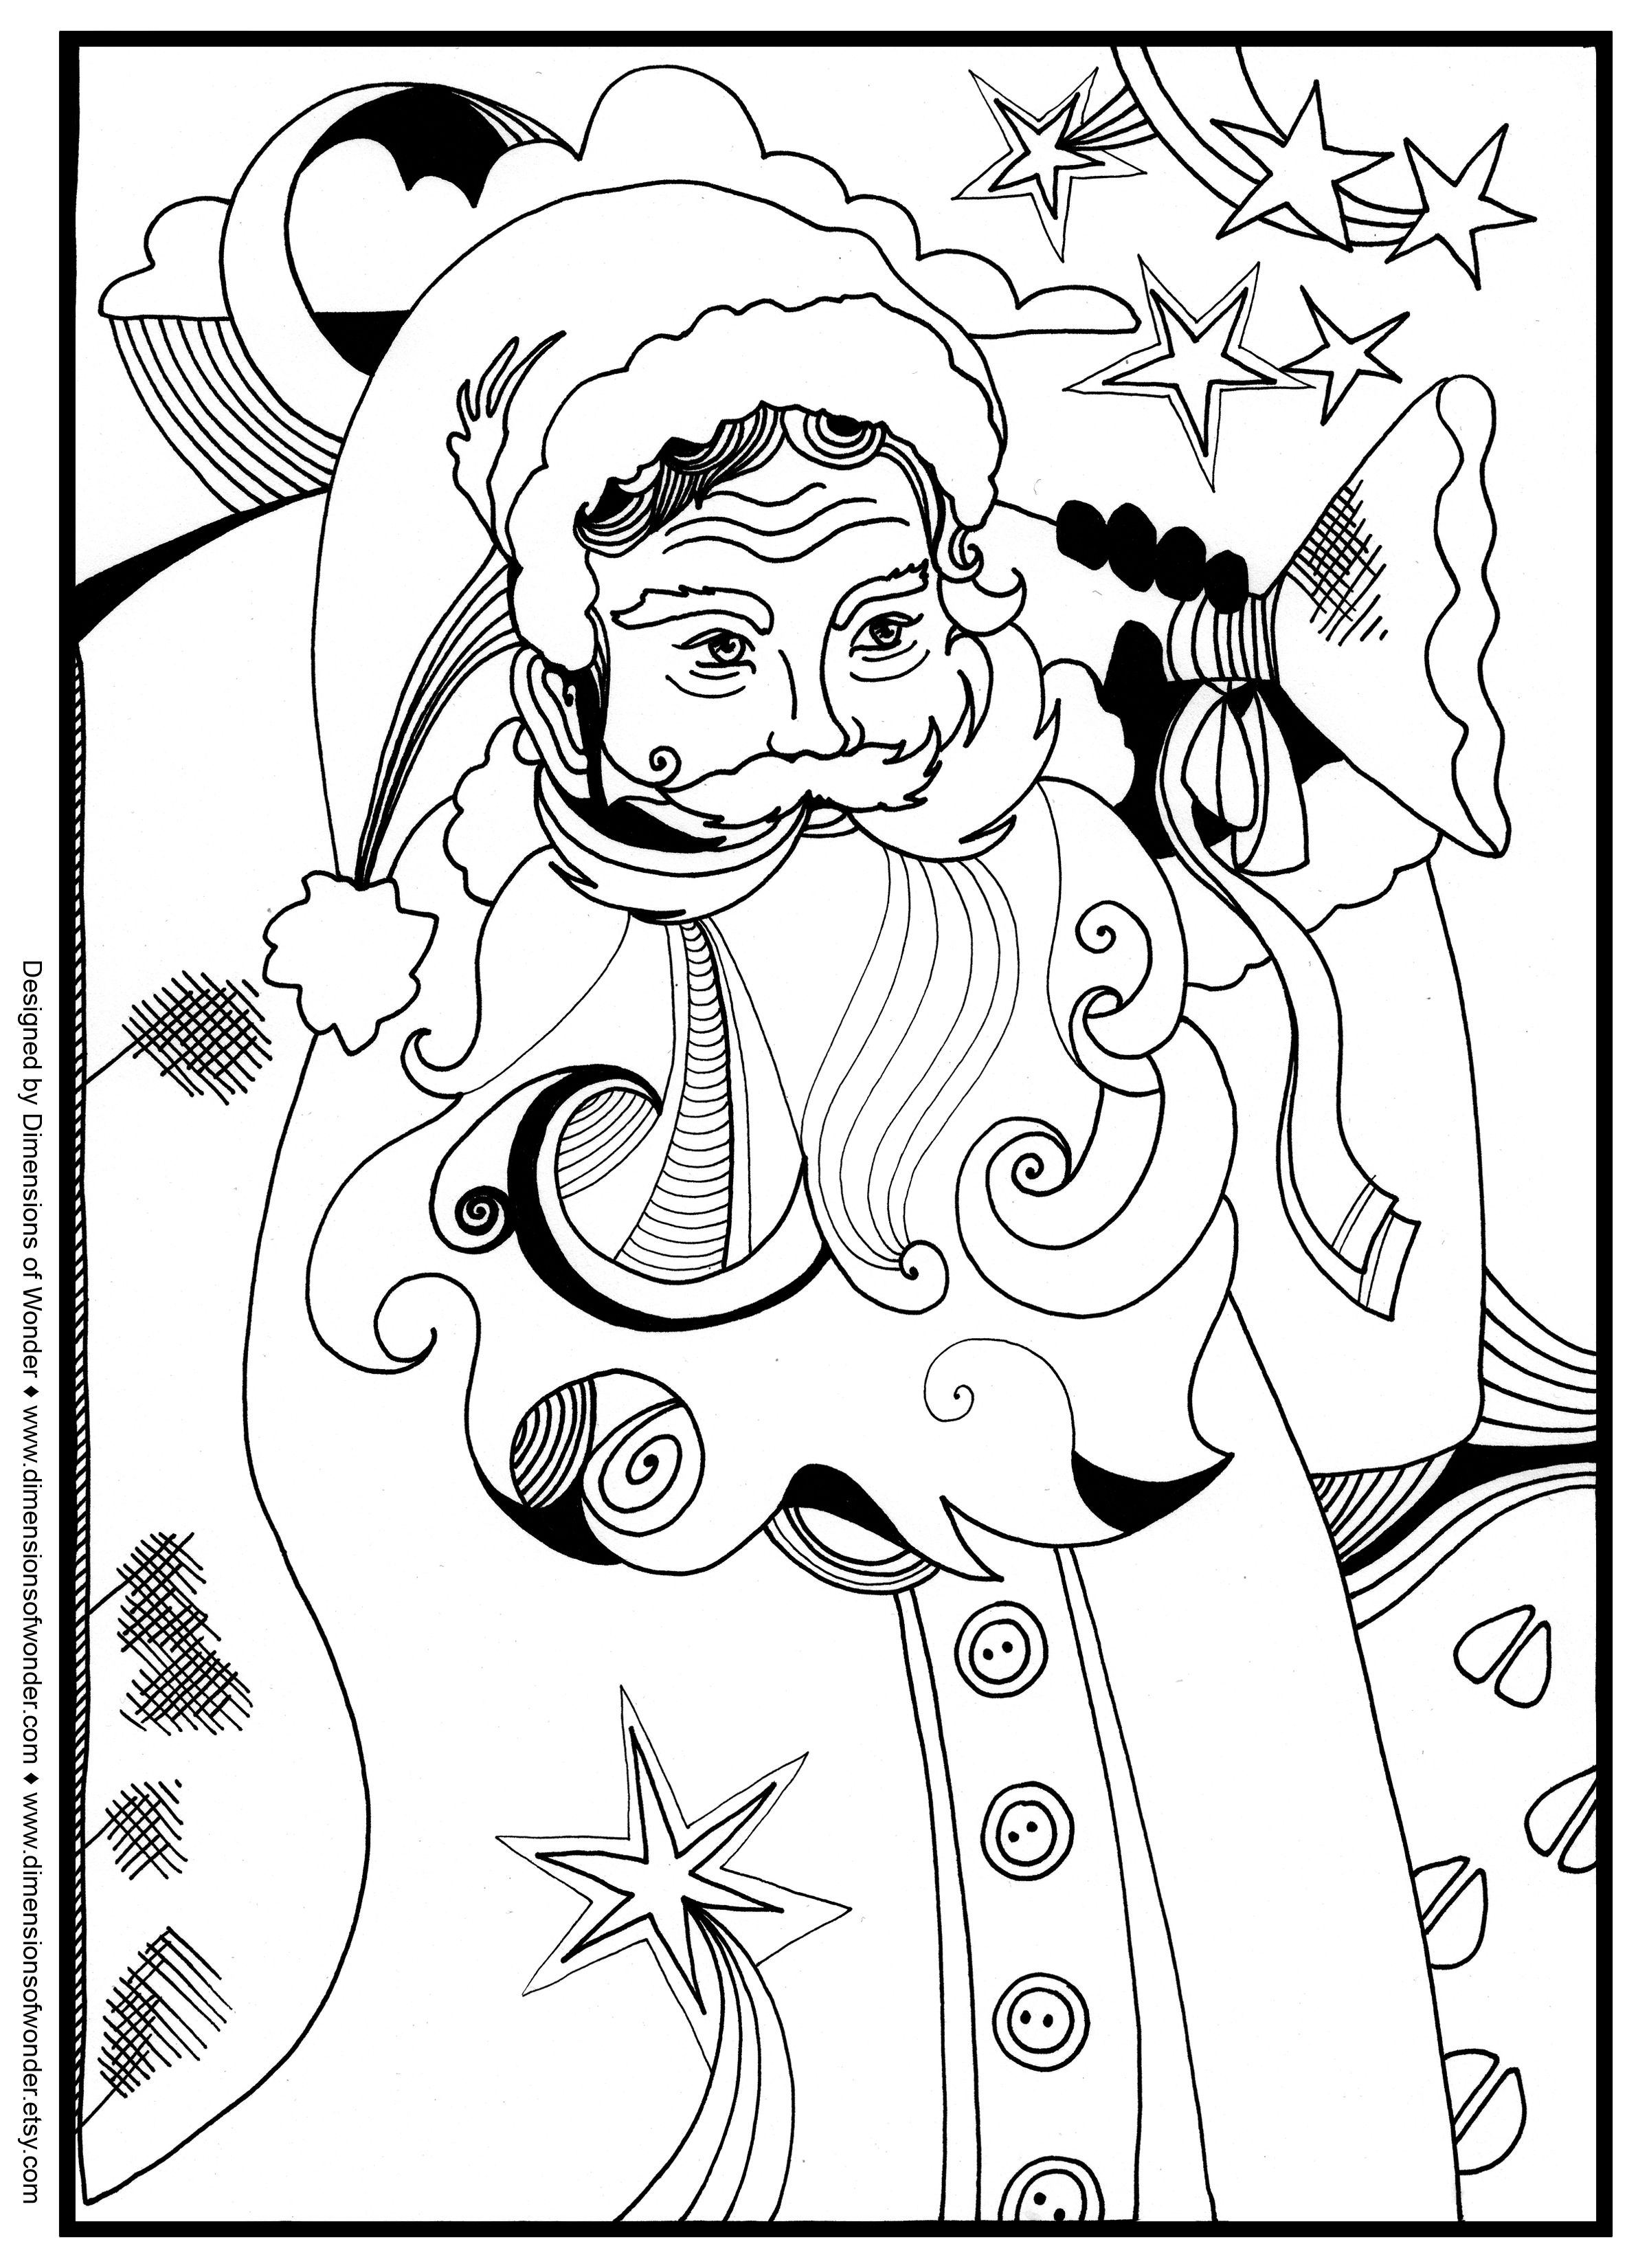 Santa Coloring Sheet Printable With Christmas Around The World Pages Kidsfreecoloring Net